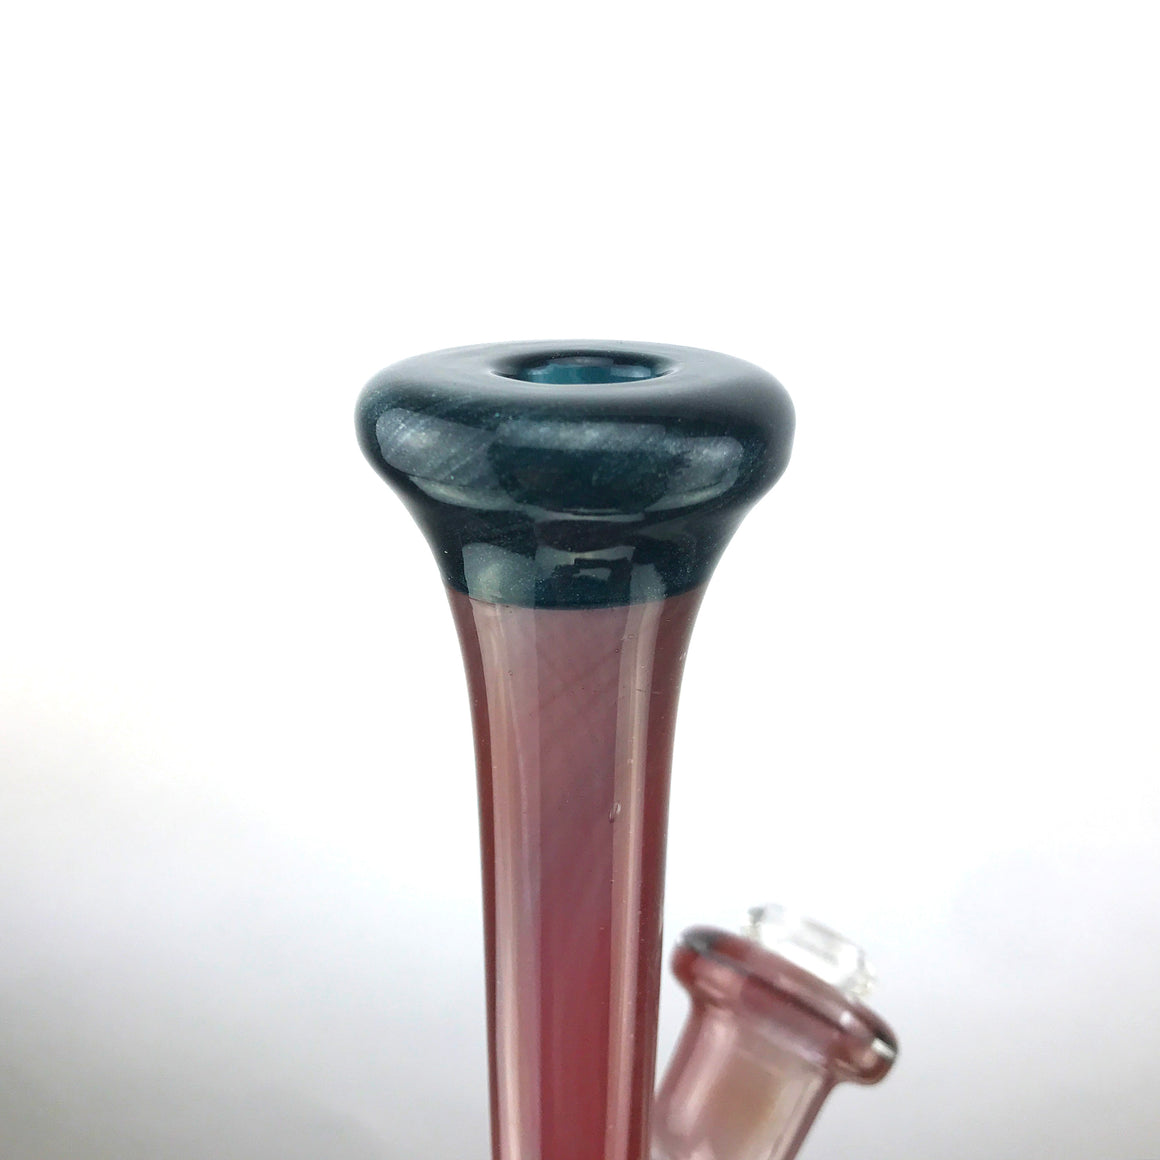 Fully Worked Mini Tube - Wine Red/Fillacello - 10mm Female